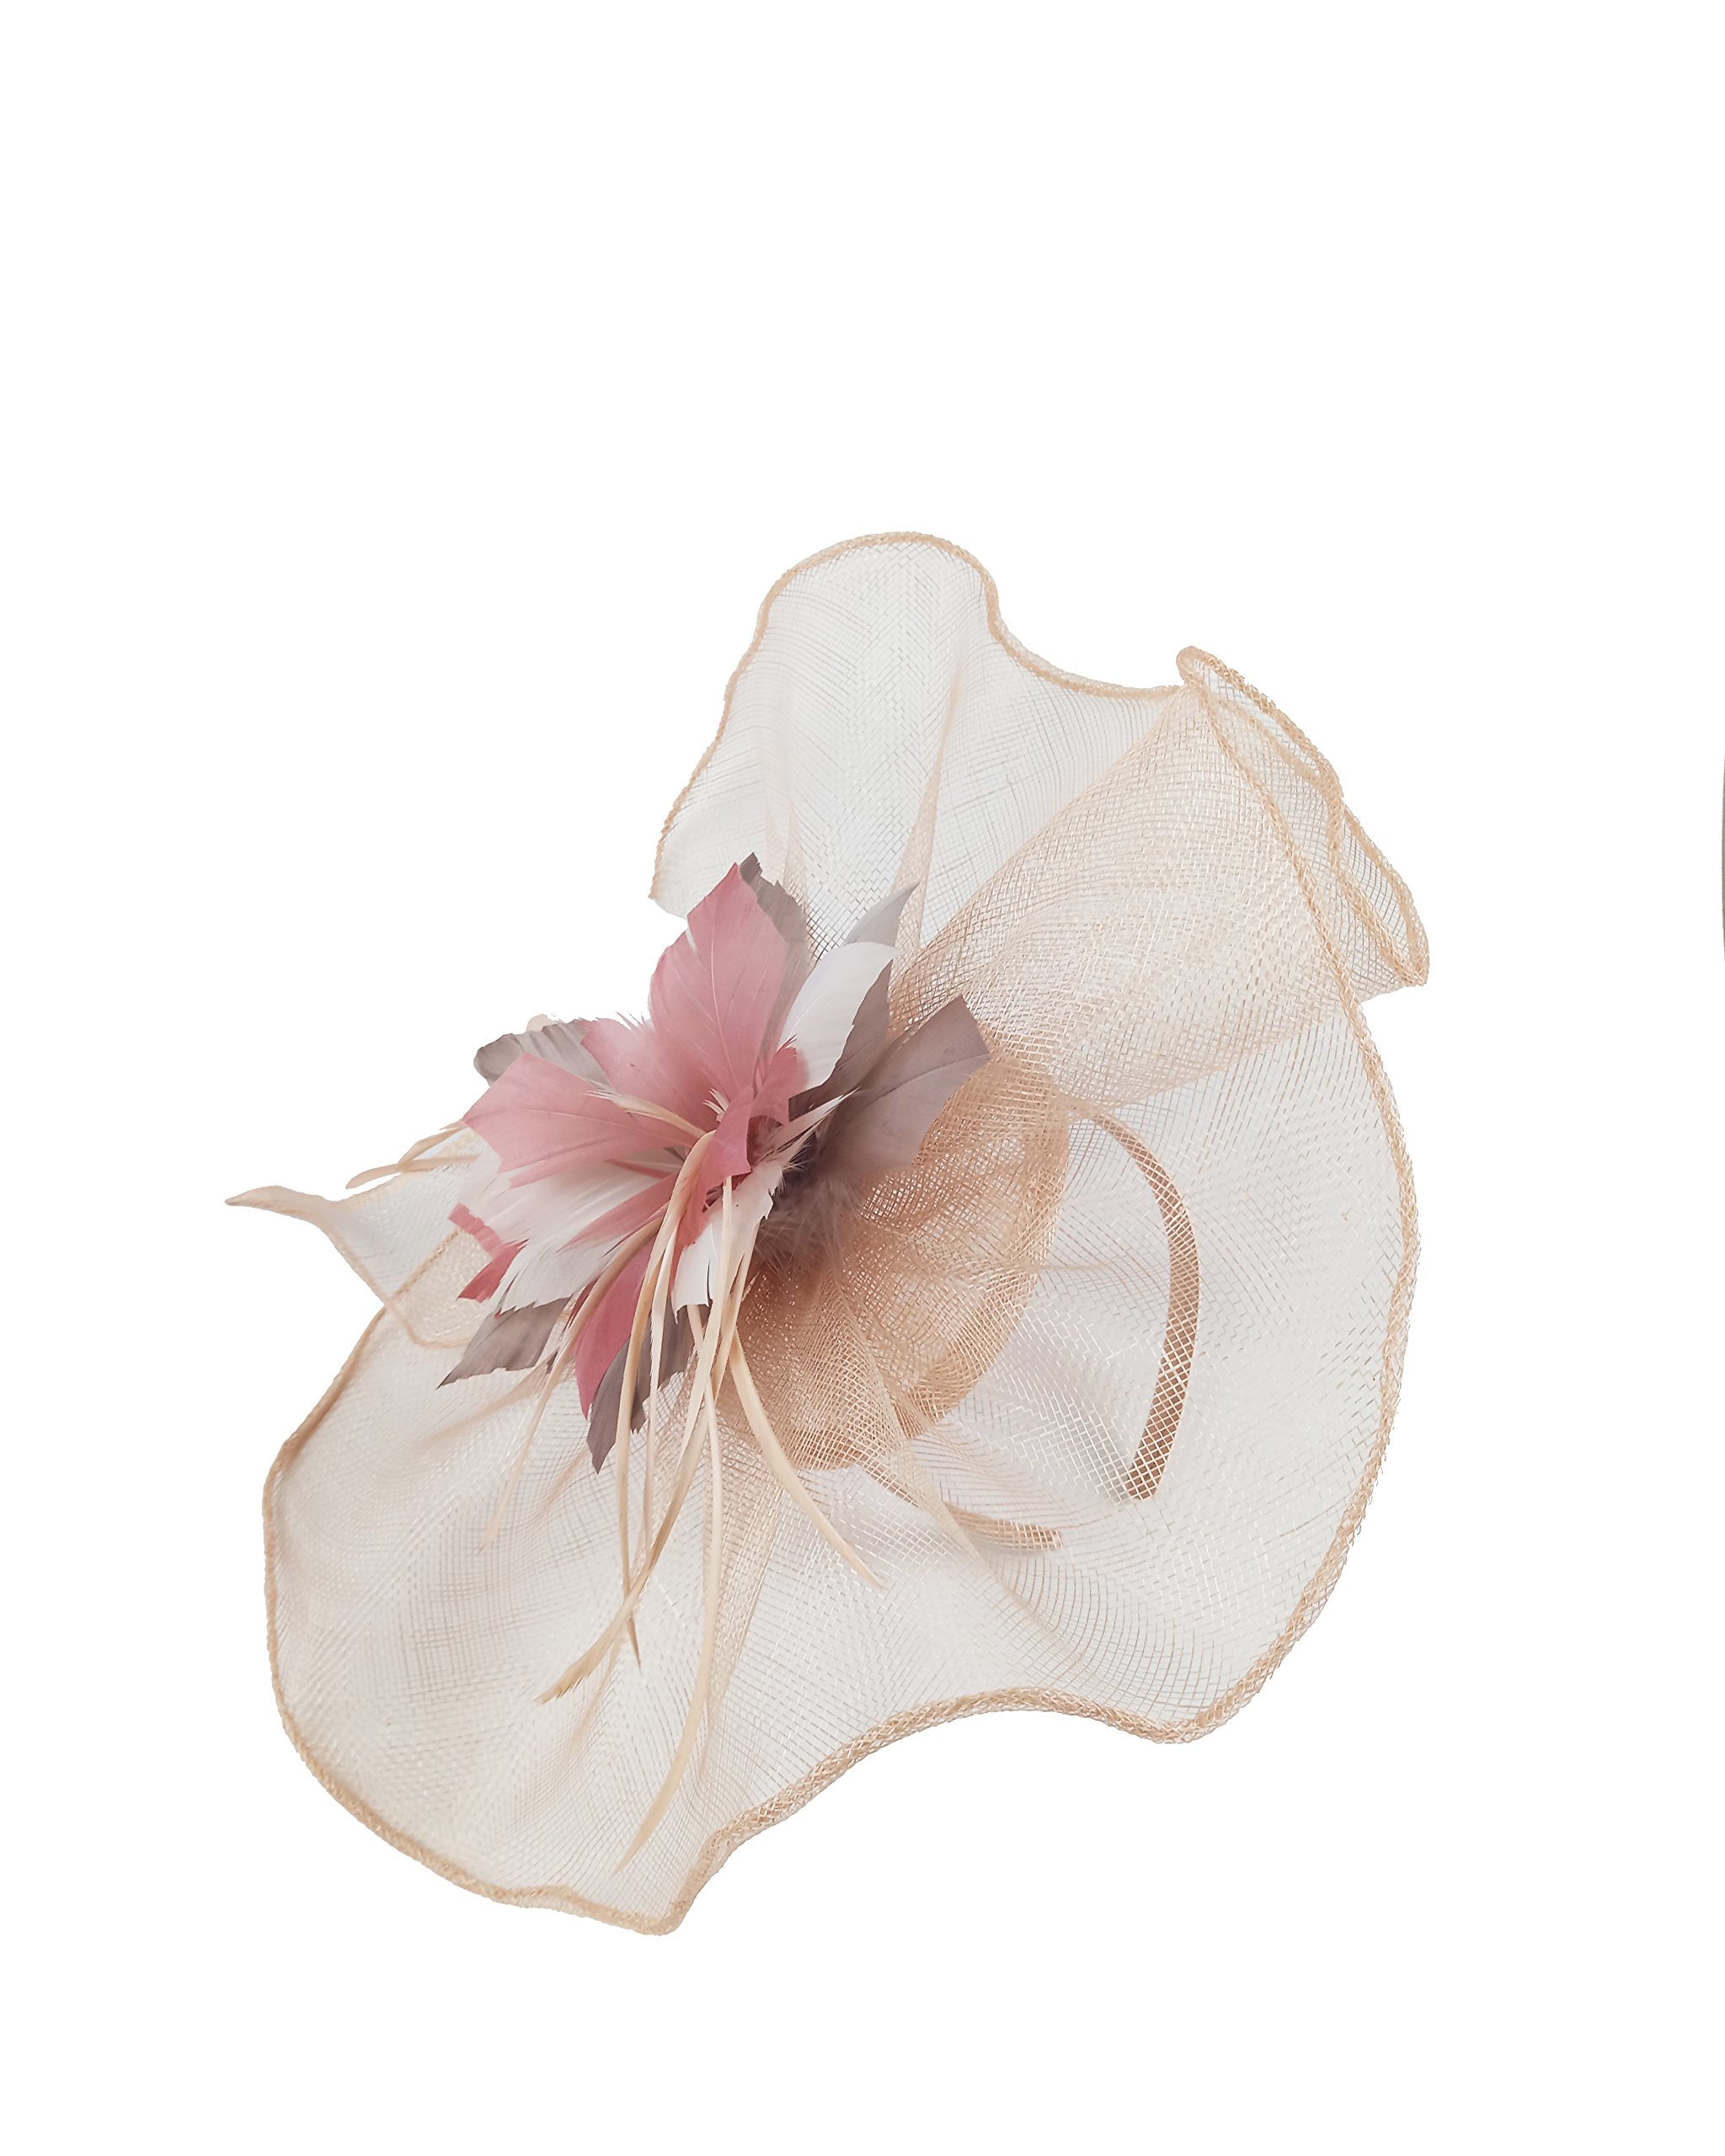 High-Fashion Women Sinamay Fascinator Headband Clip Head Piece for Tea Party Racing Debery Church Wedding Special Occasions(Salmon Pink)